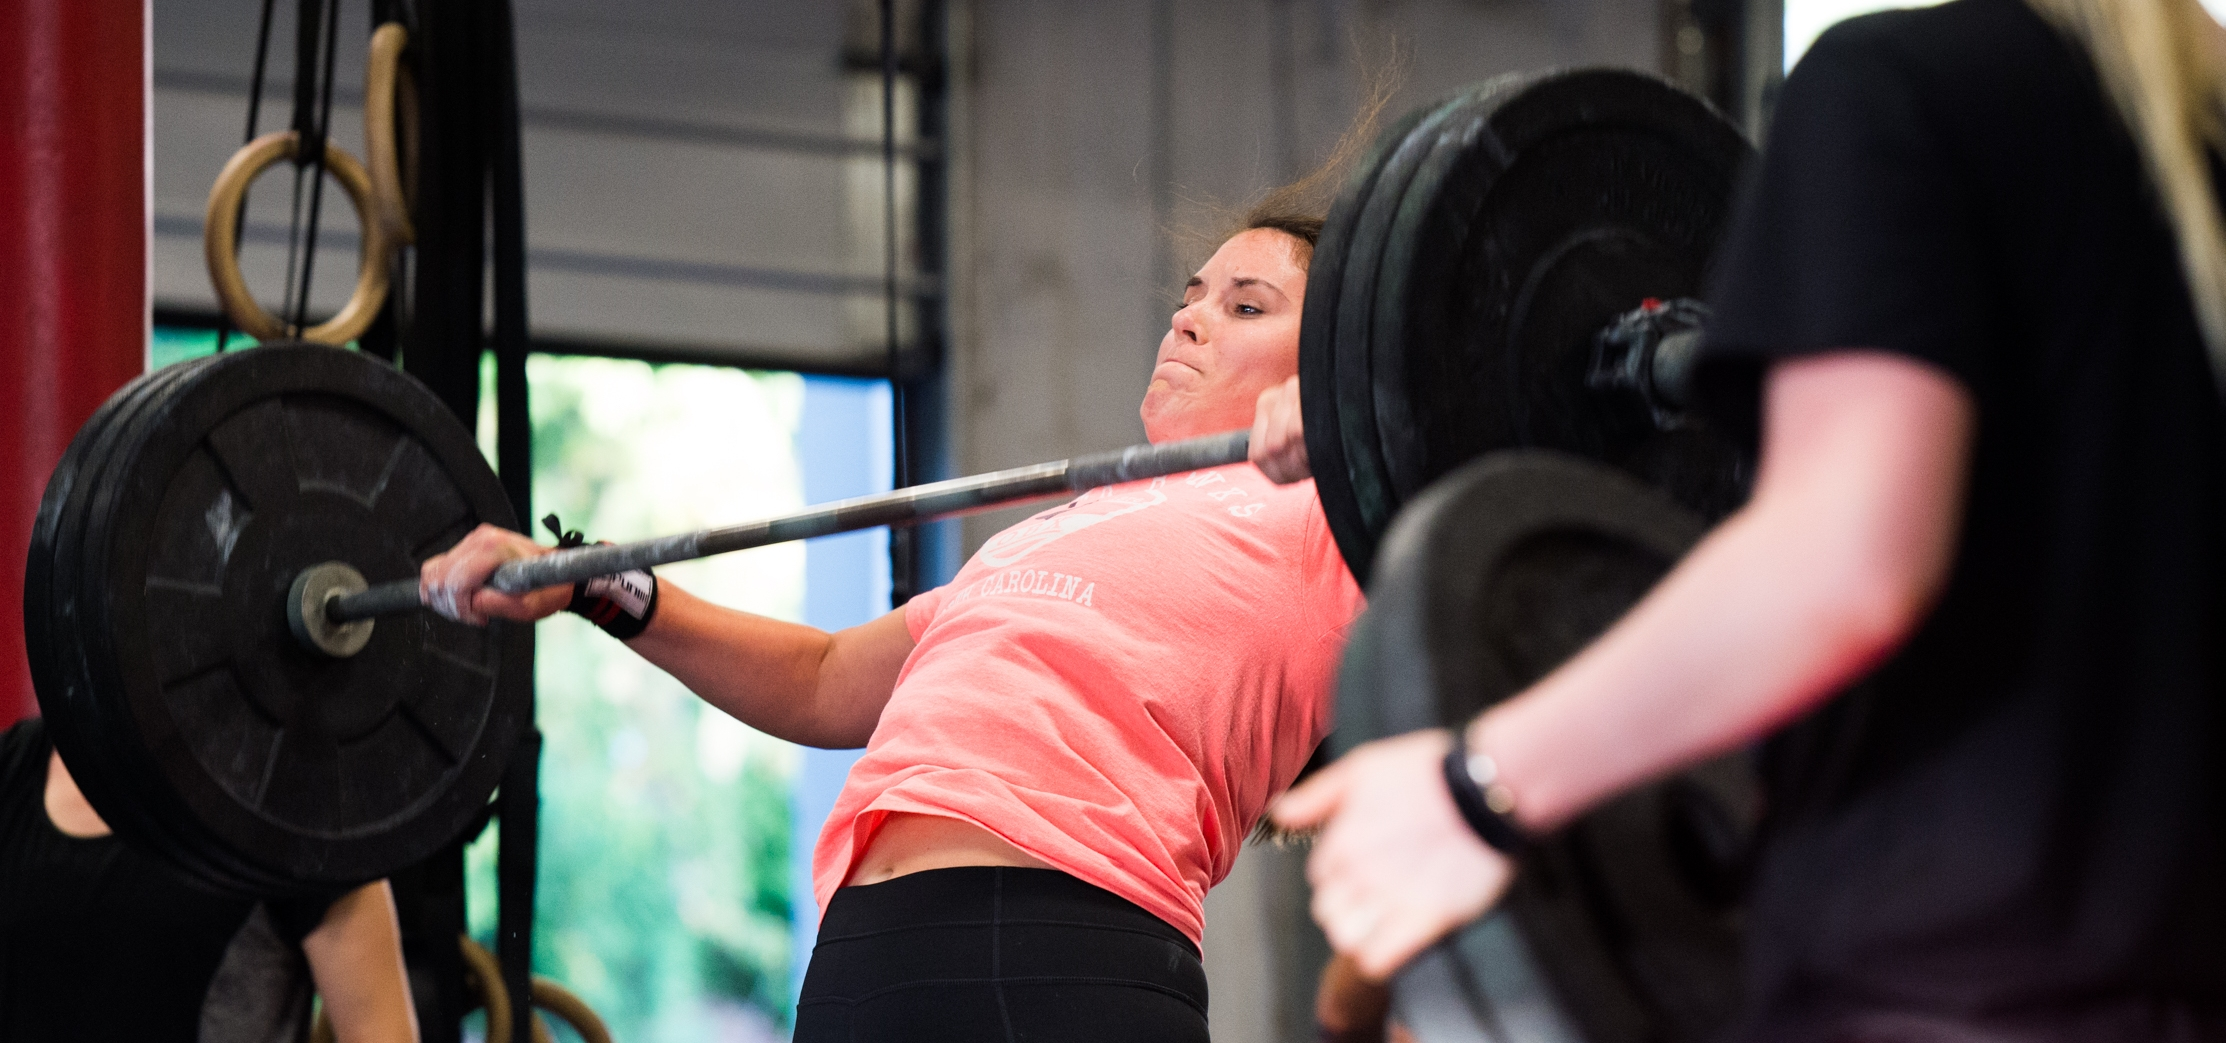 Most of your goals in CrossFit will require some practice time outside of classes.